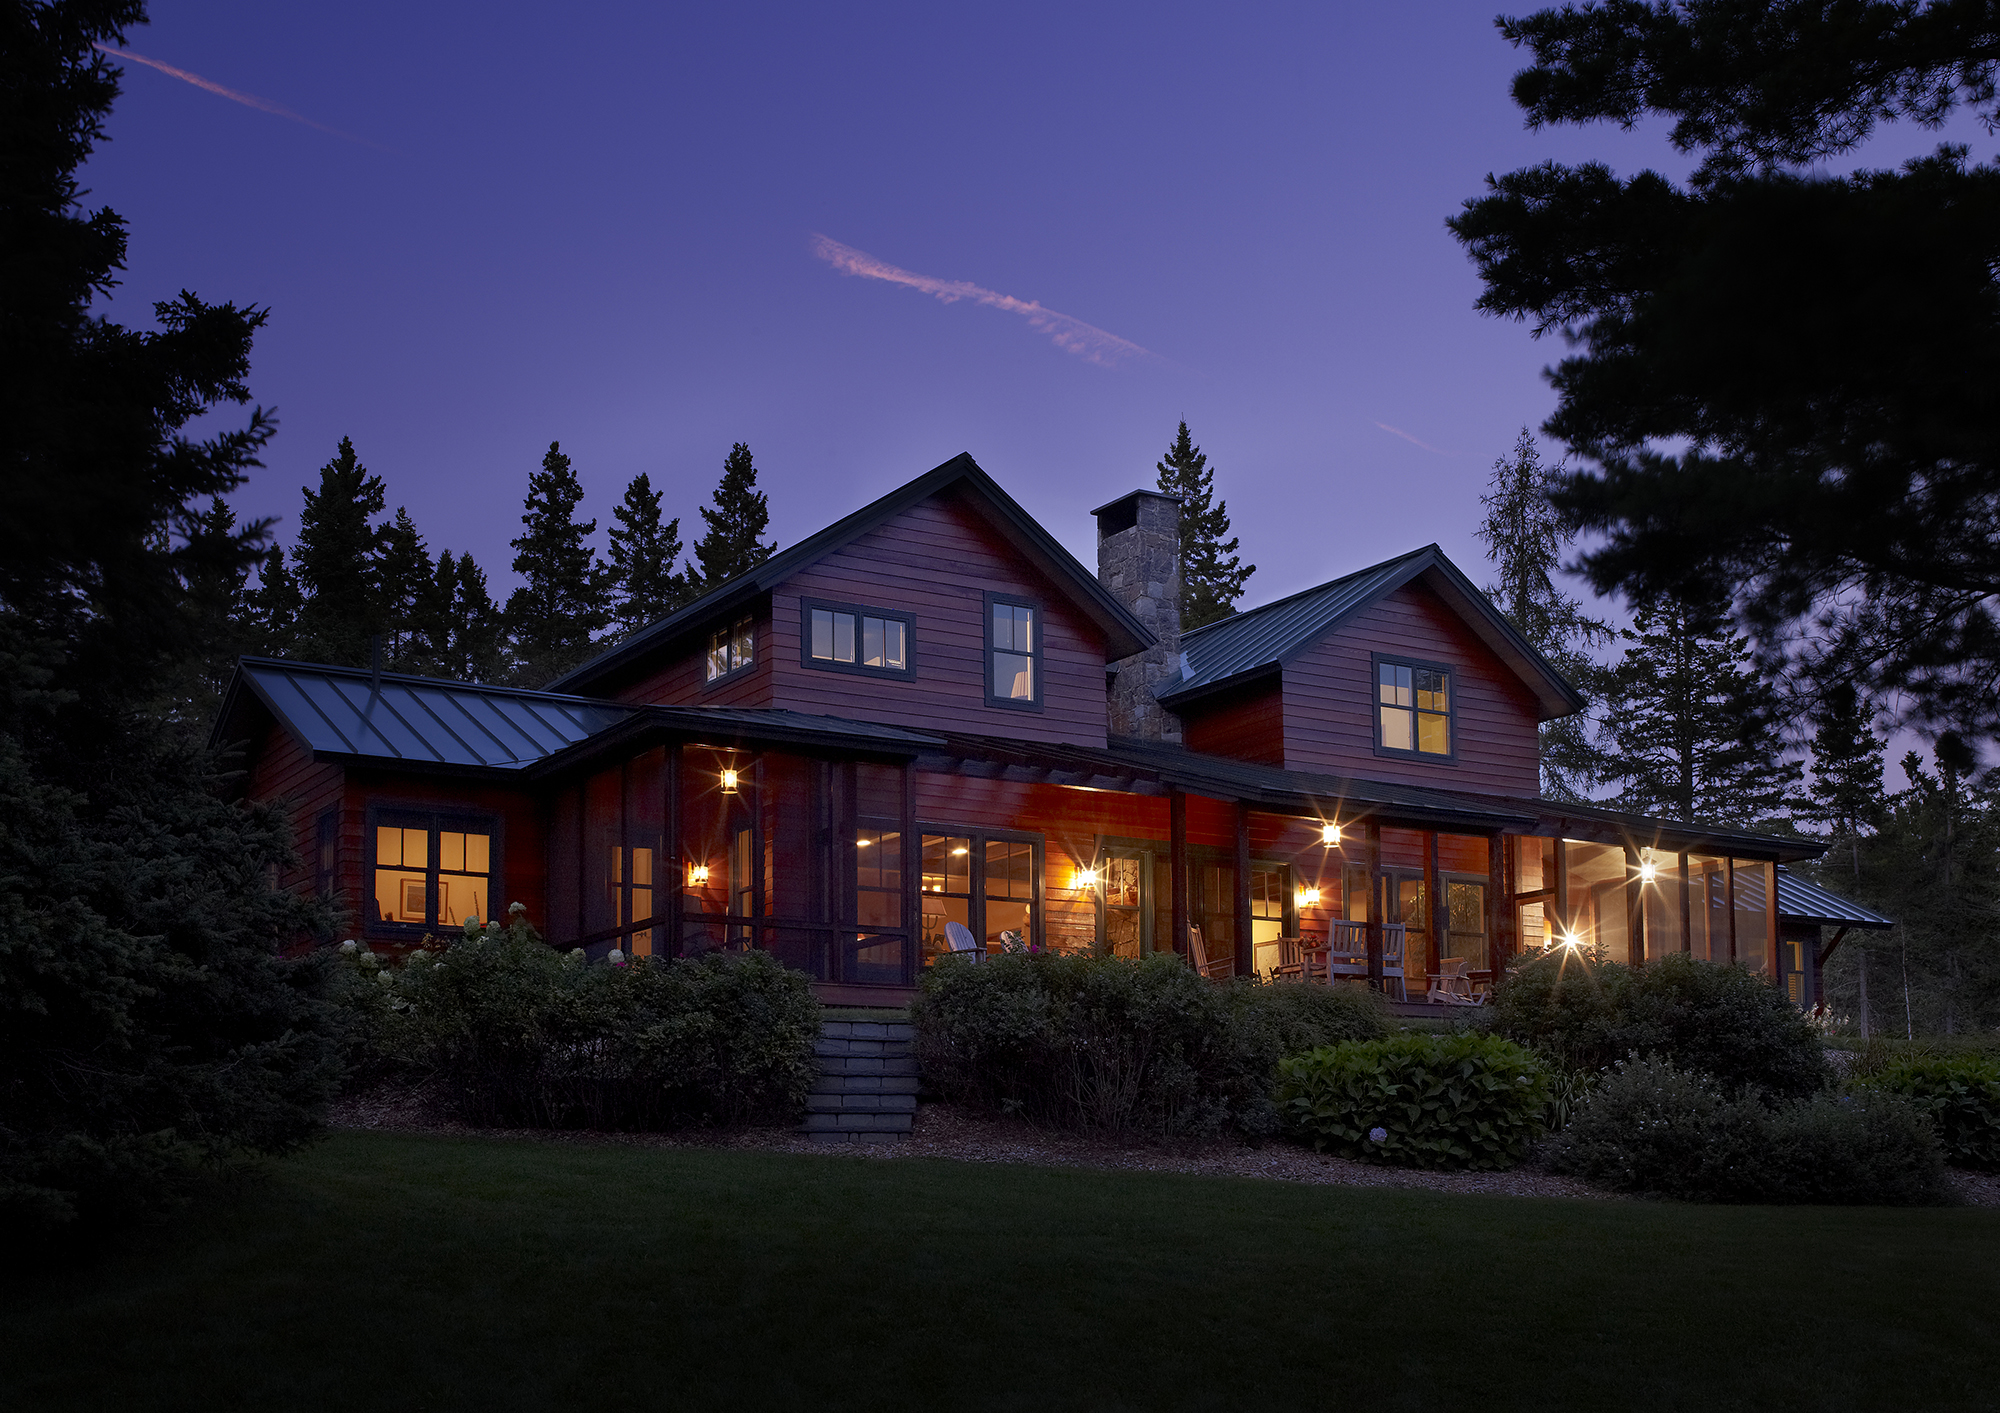 knickerbocker-group-project-rangley-maine-lakeside-farmhouse-authentic-lakeside-home-grass-roads